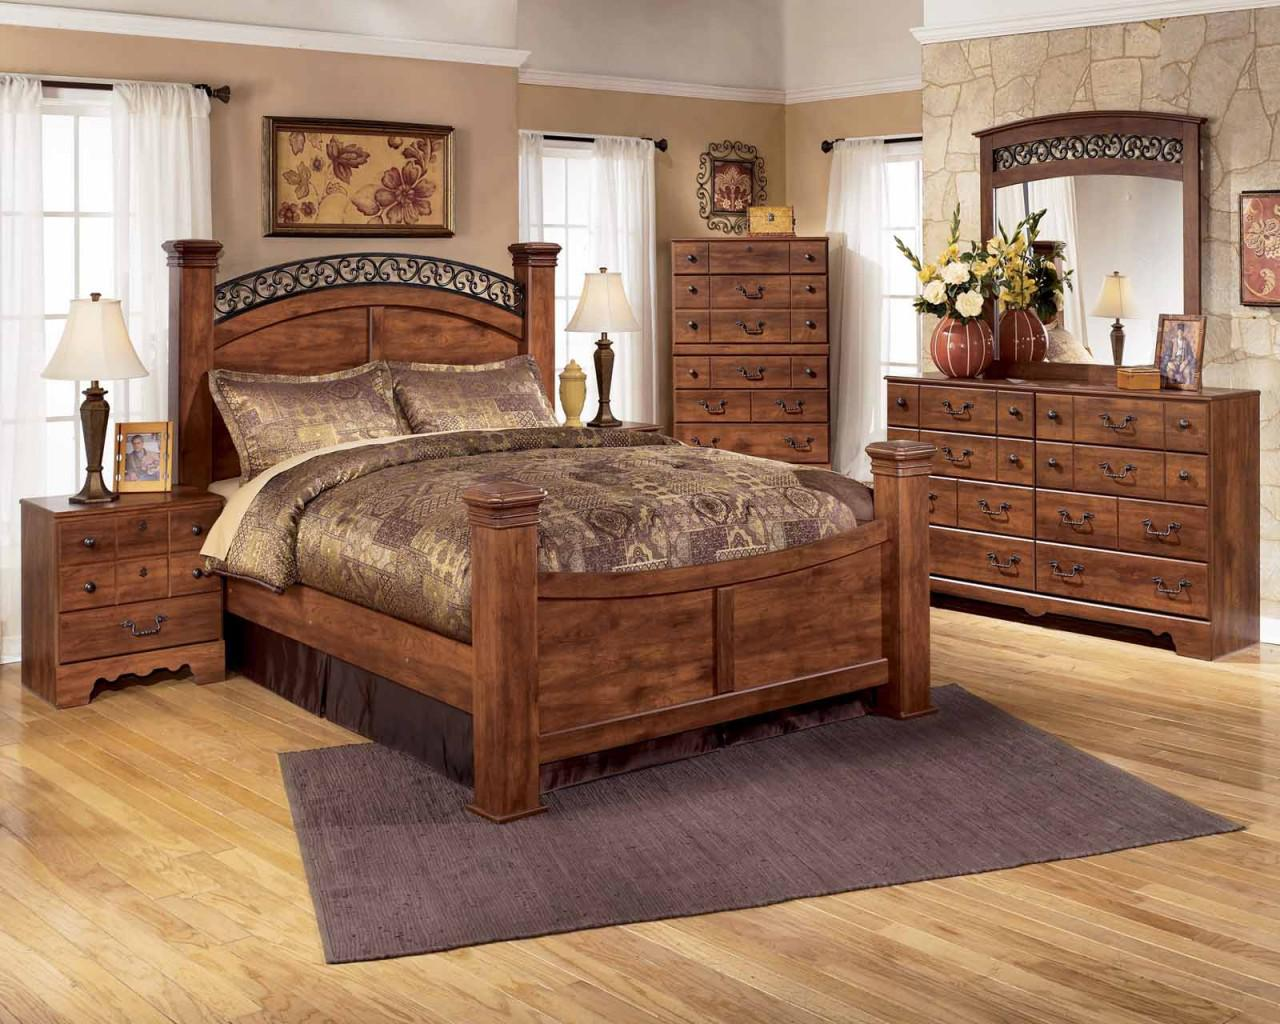 Image of: Queen Size Bedroom Furniture For Sale